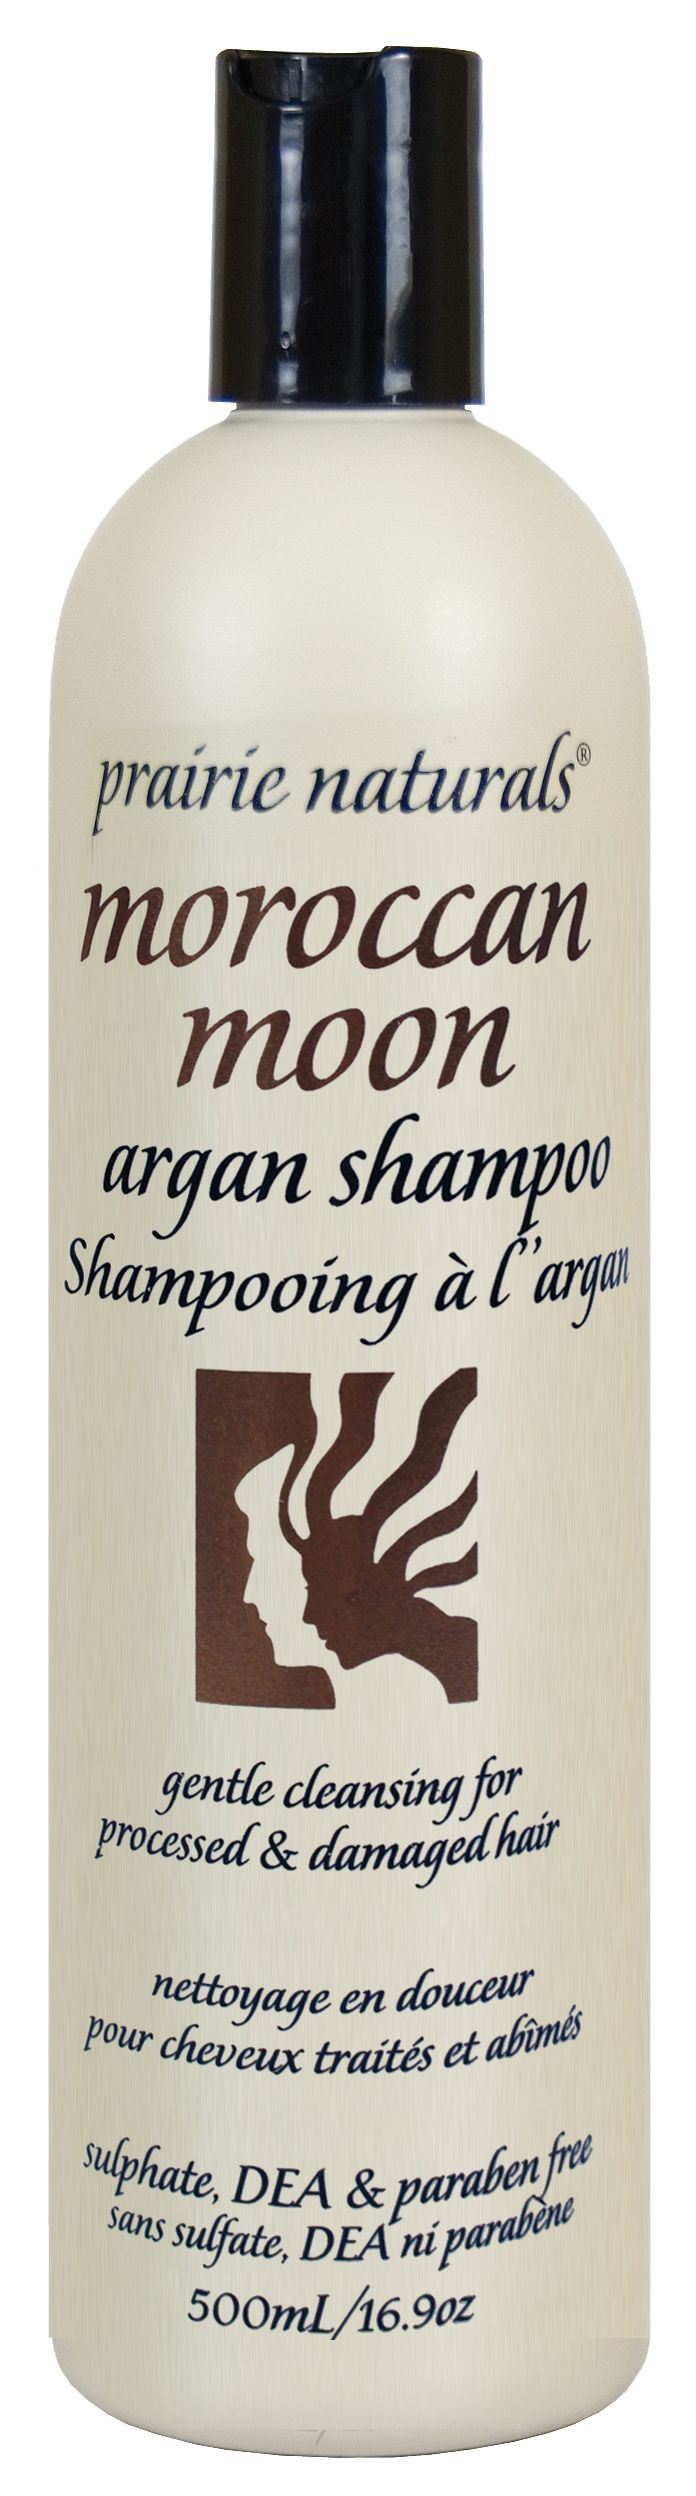 Moroccan Moon Argan Shampoo. Gentle cleansing for processed & damaged hair. Sulphate, DEA & parabean free!